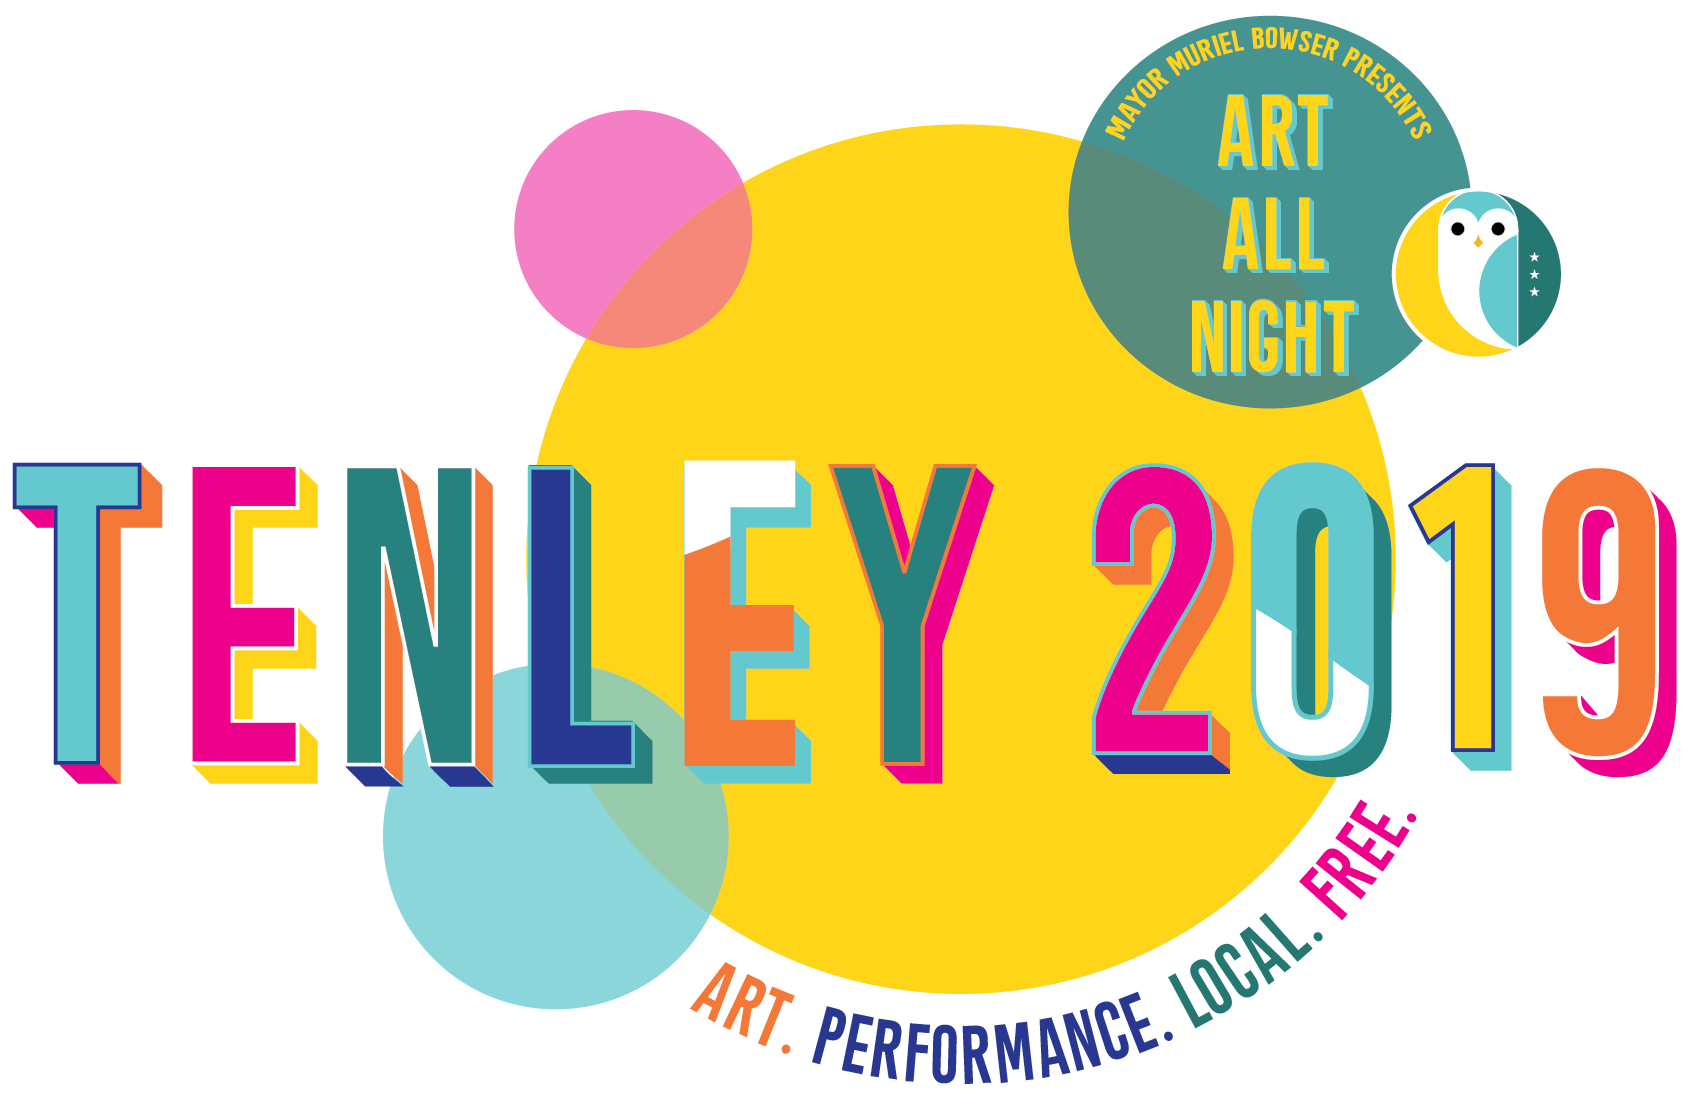 Mayor Muriel Bowser Presents: Art All Night - Tenley 2019. Art. Performance. Local. Free